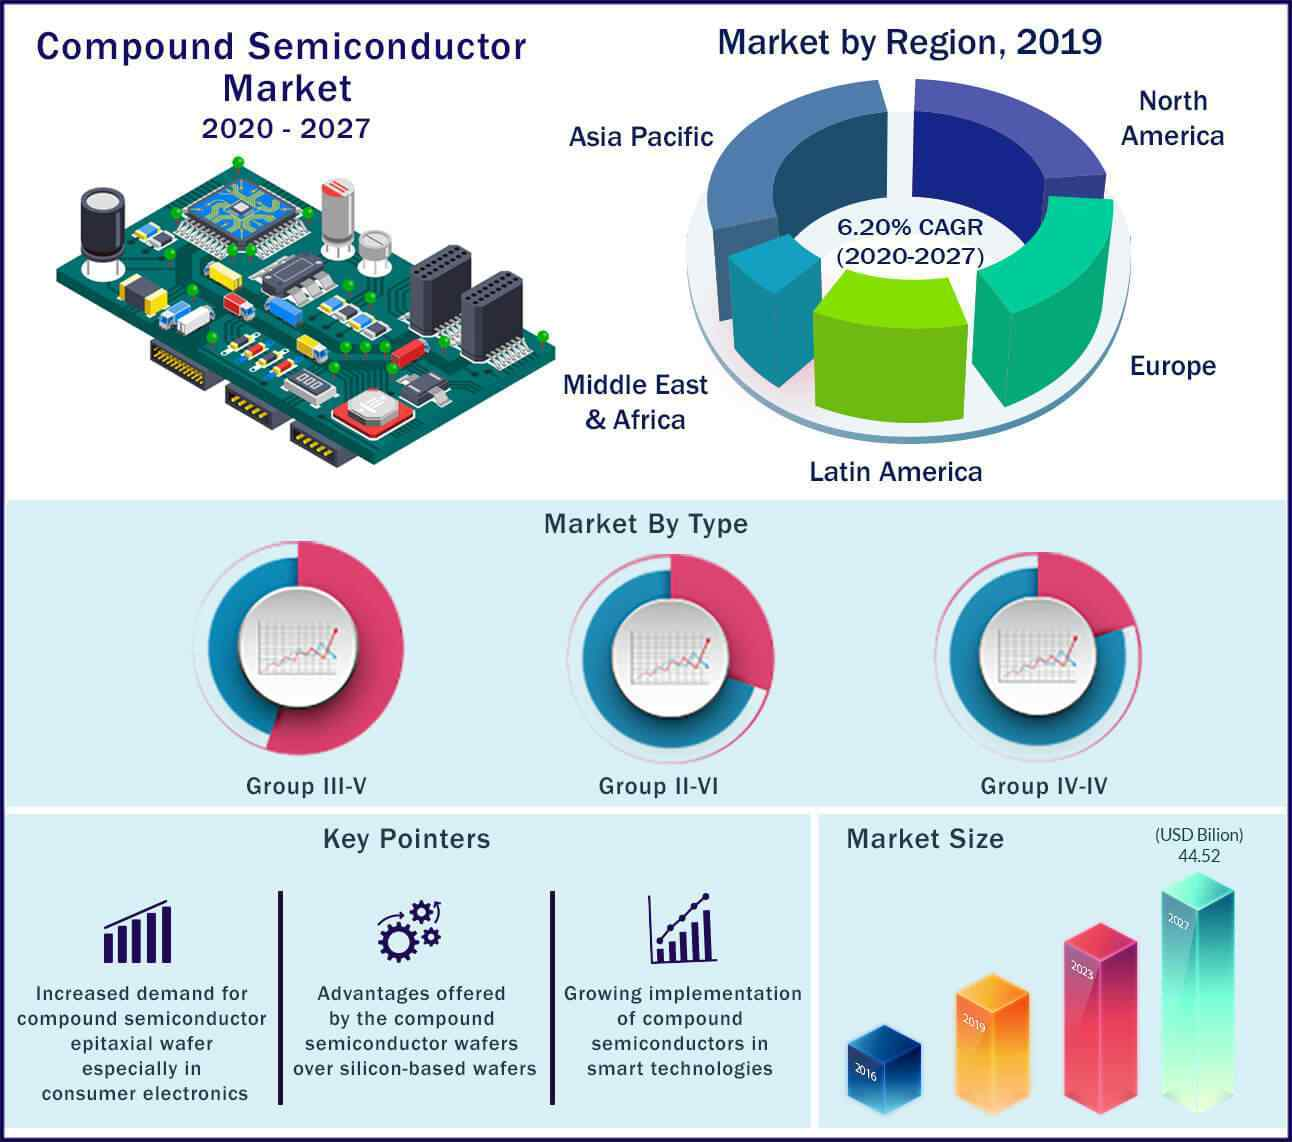 Global Compound Semiconductor Market 2020 to 2027